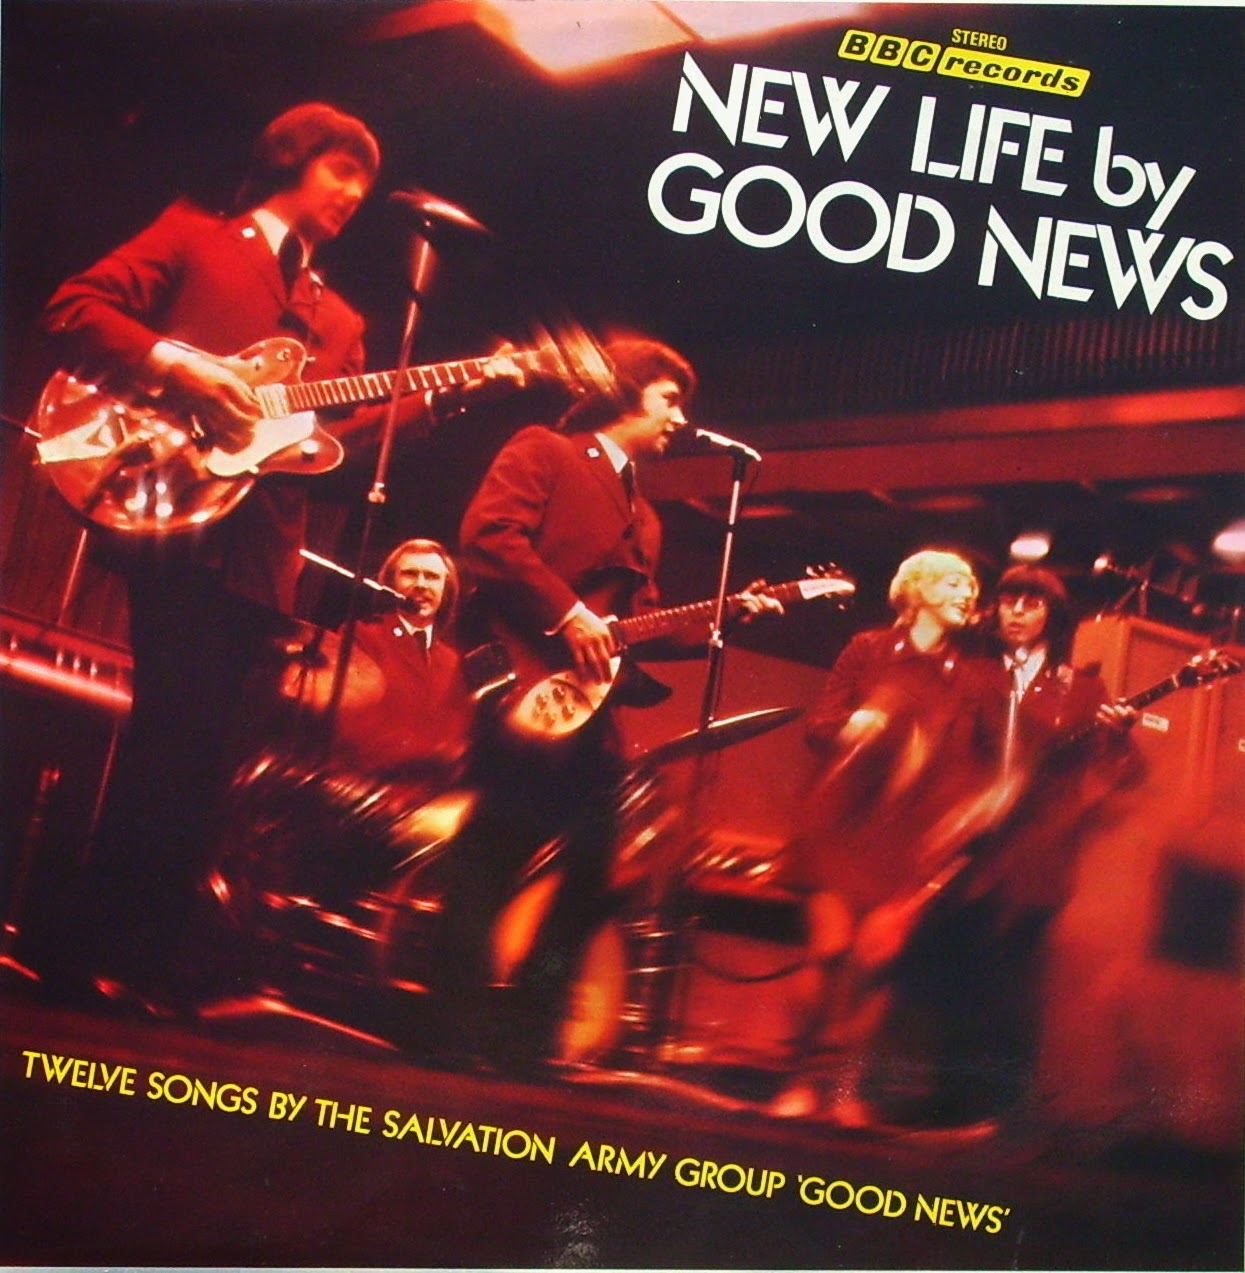 Good News - New Life